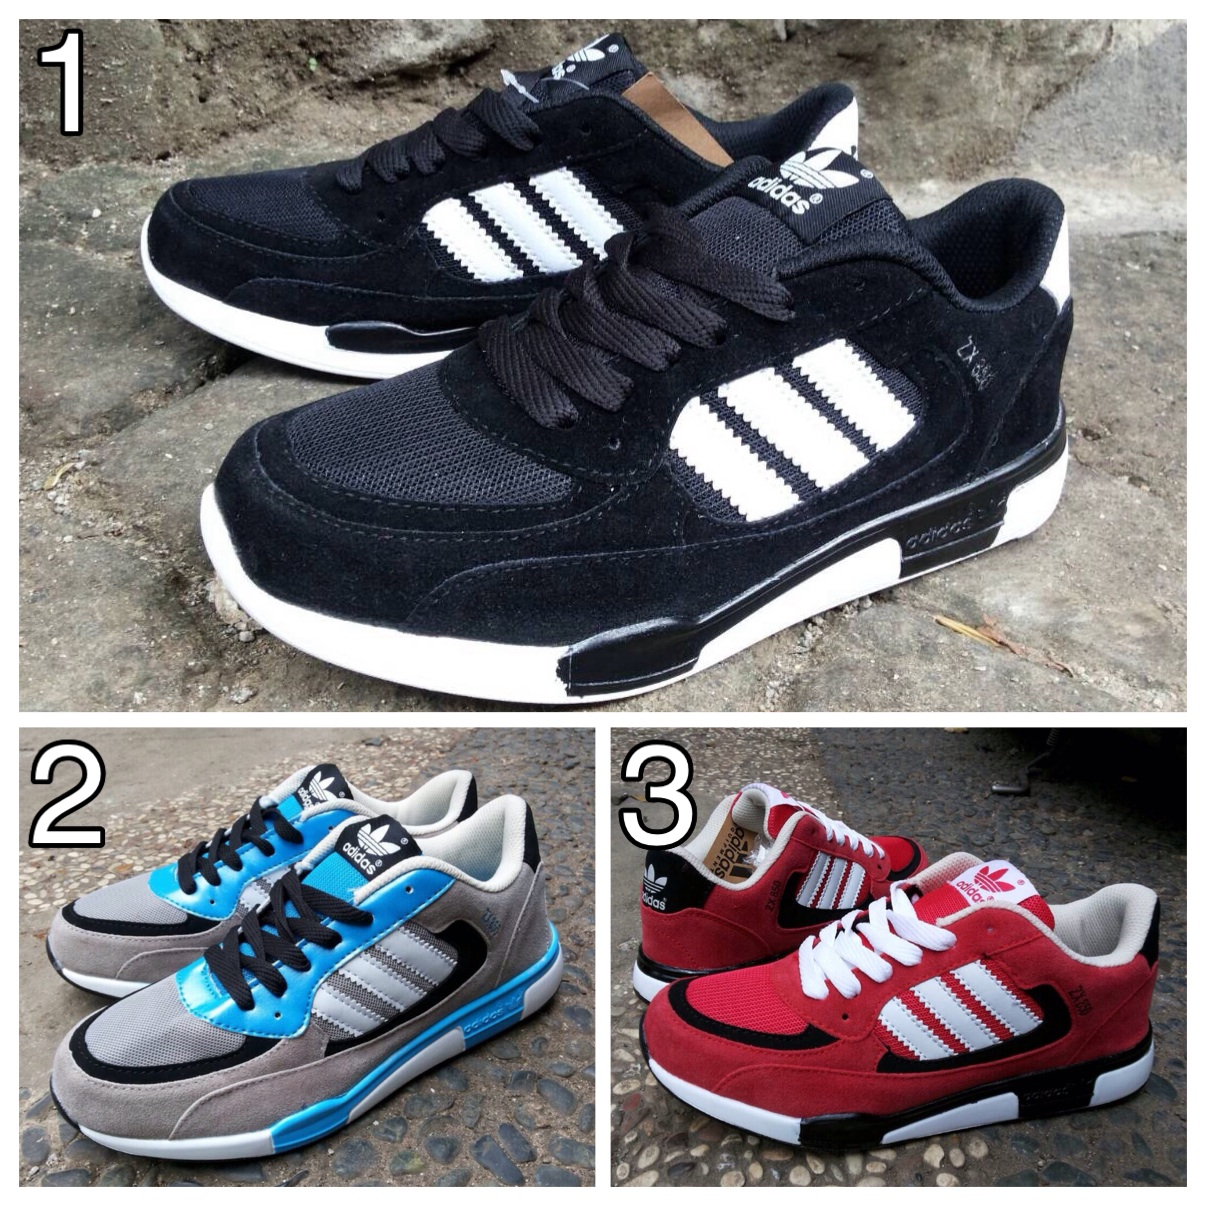 acde34c319ee discount code for harga adidas zx 850 black 29a81 cb619